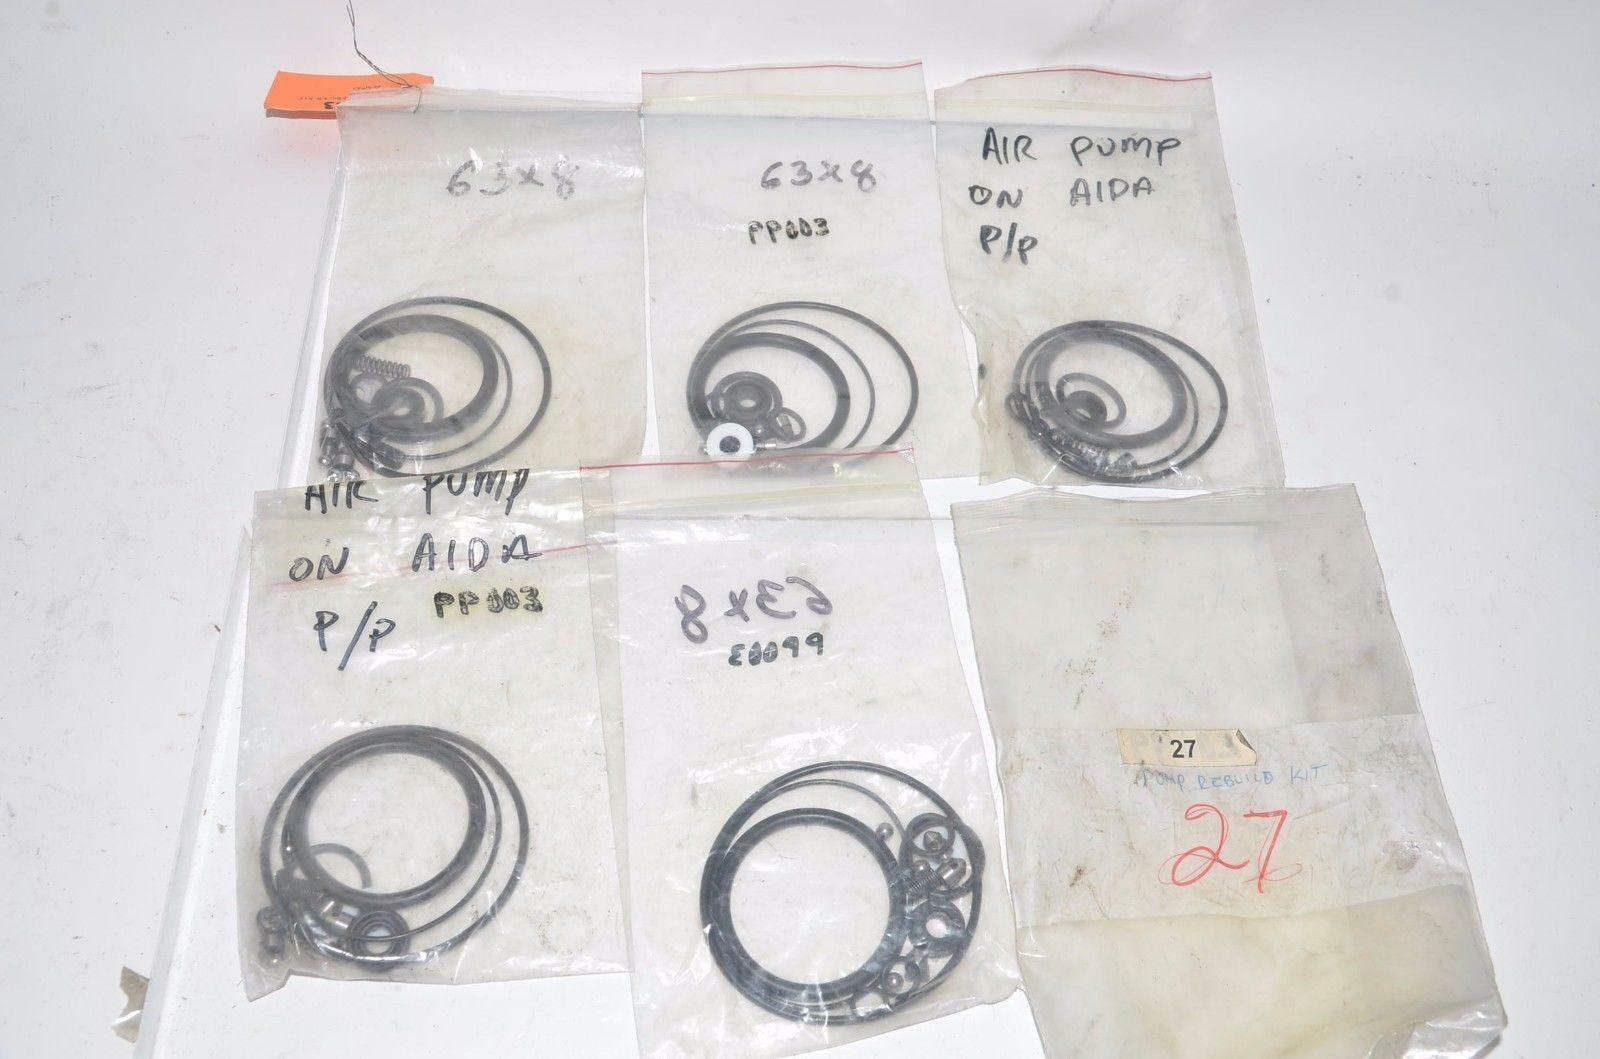 Lot of Rebuild Kit for Pump Pump Pump Parts Seals Gaskets Aida Air Pump 5aac53